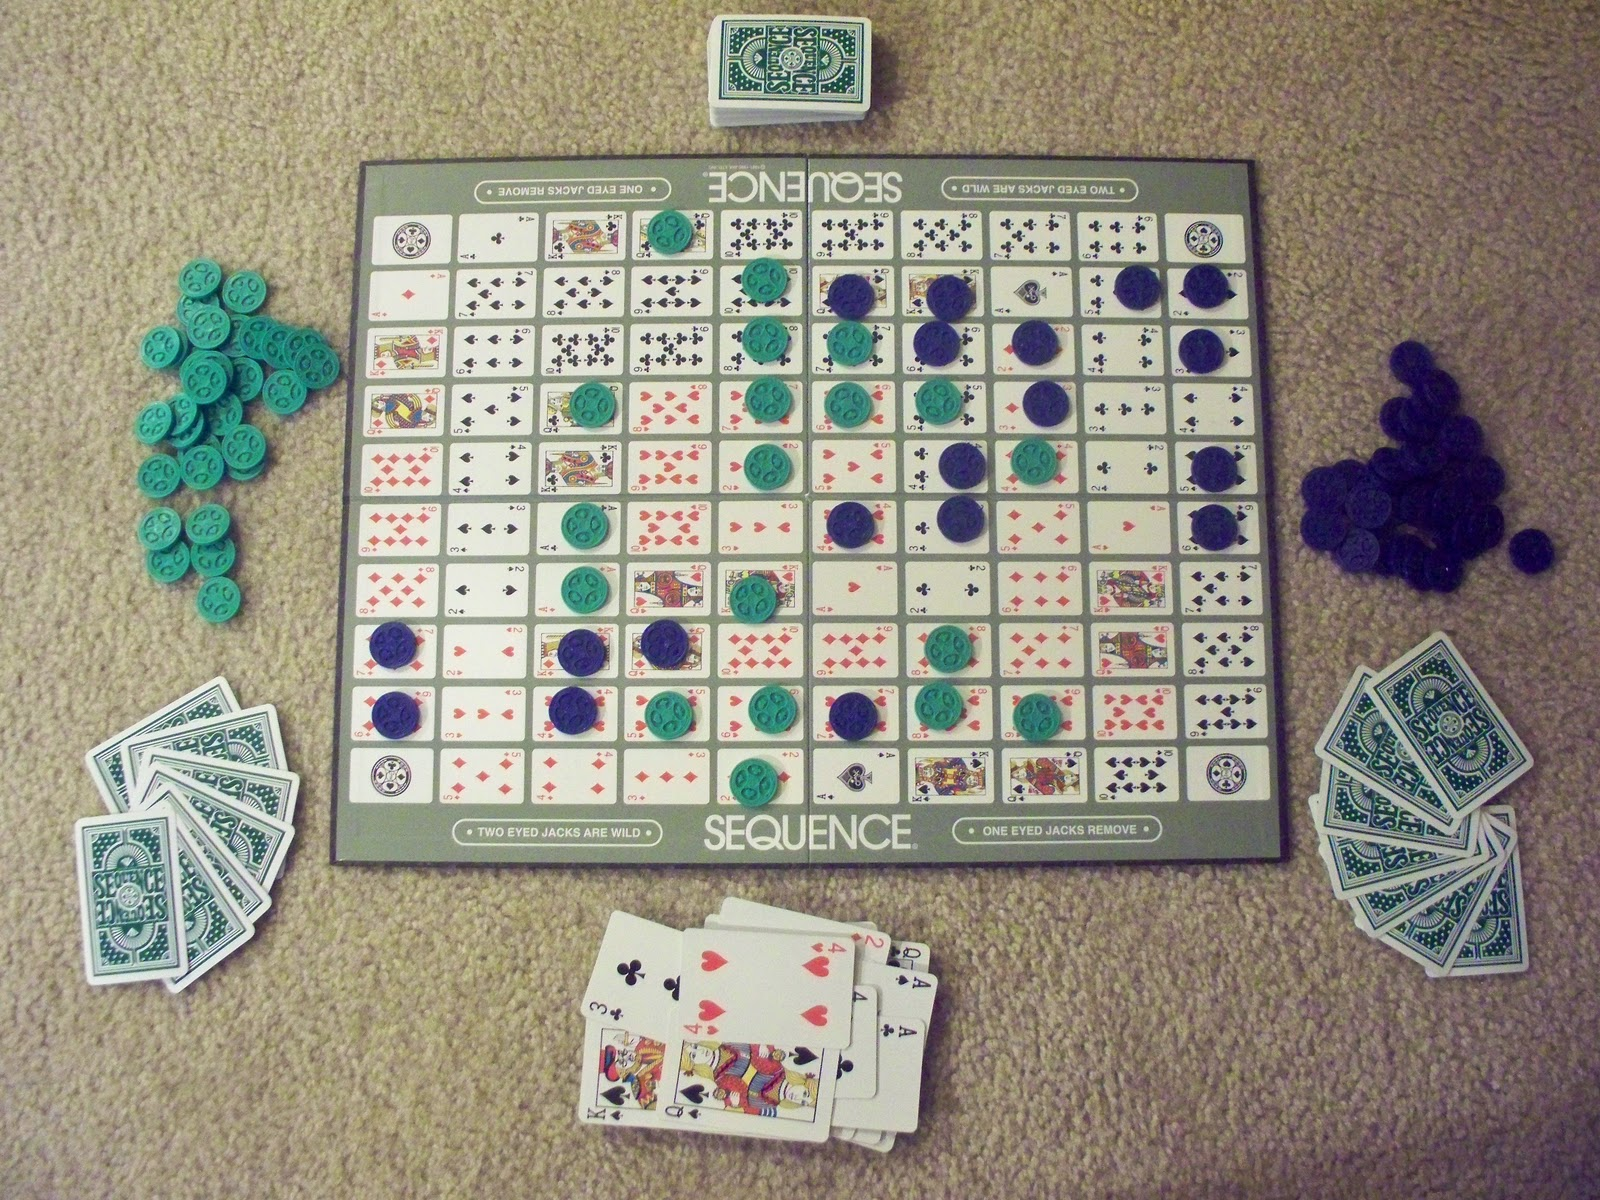 Amazon.com: SEQUENCE- Original SEQUENCE Game with Folding ...